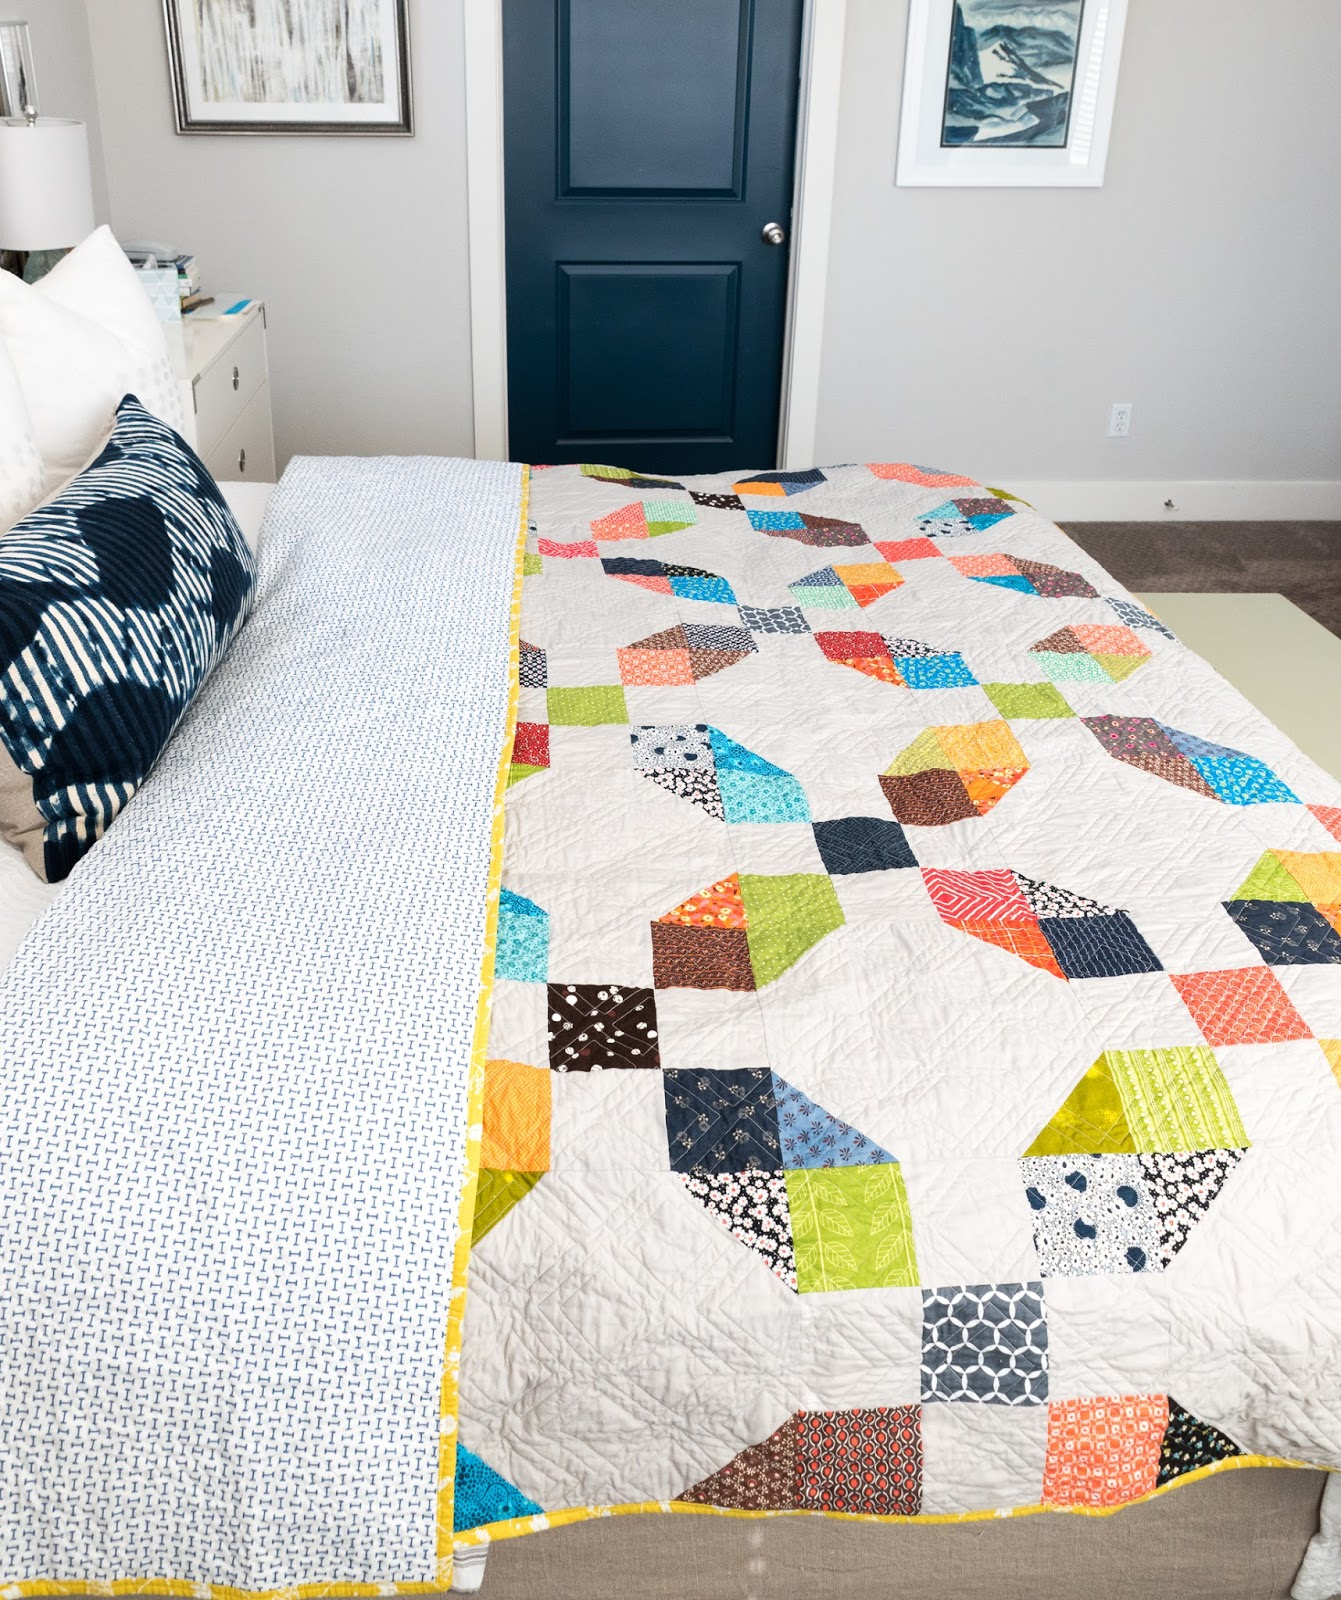 of u king queen ultimate quilt guide to your design bedding size create org home dimensions best ideas a blanket avarii